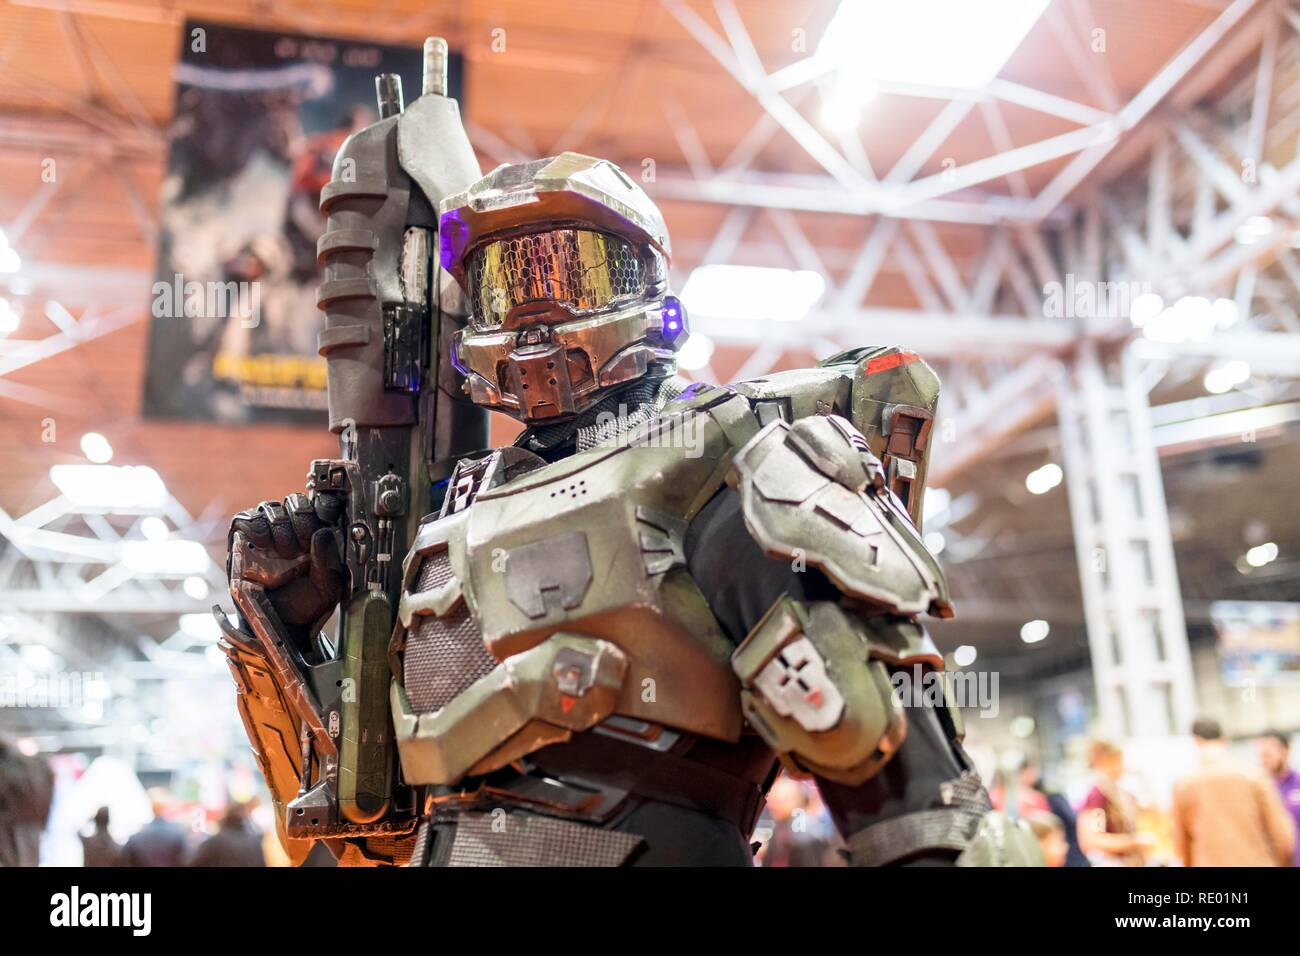 Birmingham, UK - March 17, 2018. A cosplayer dressed as an Halo Master Chief the Activision video game series at a comic con in Birmingham, UK. - Stock Image